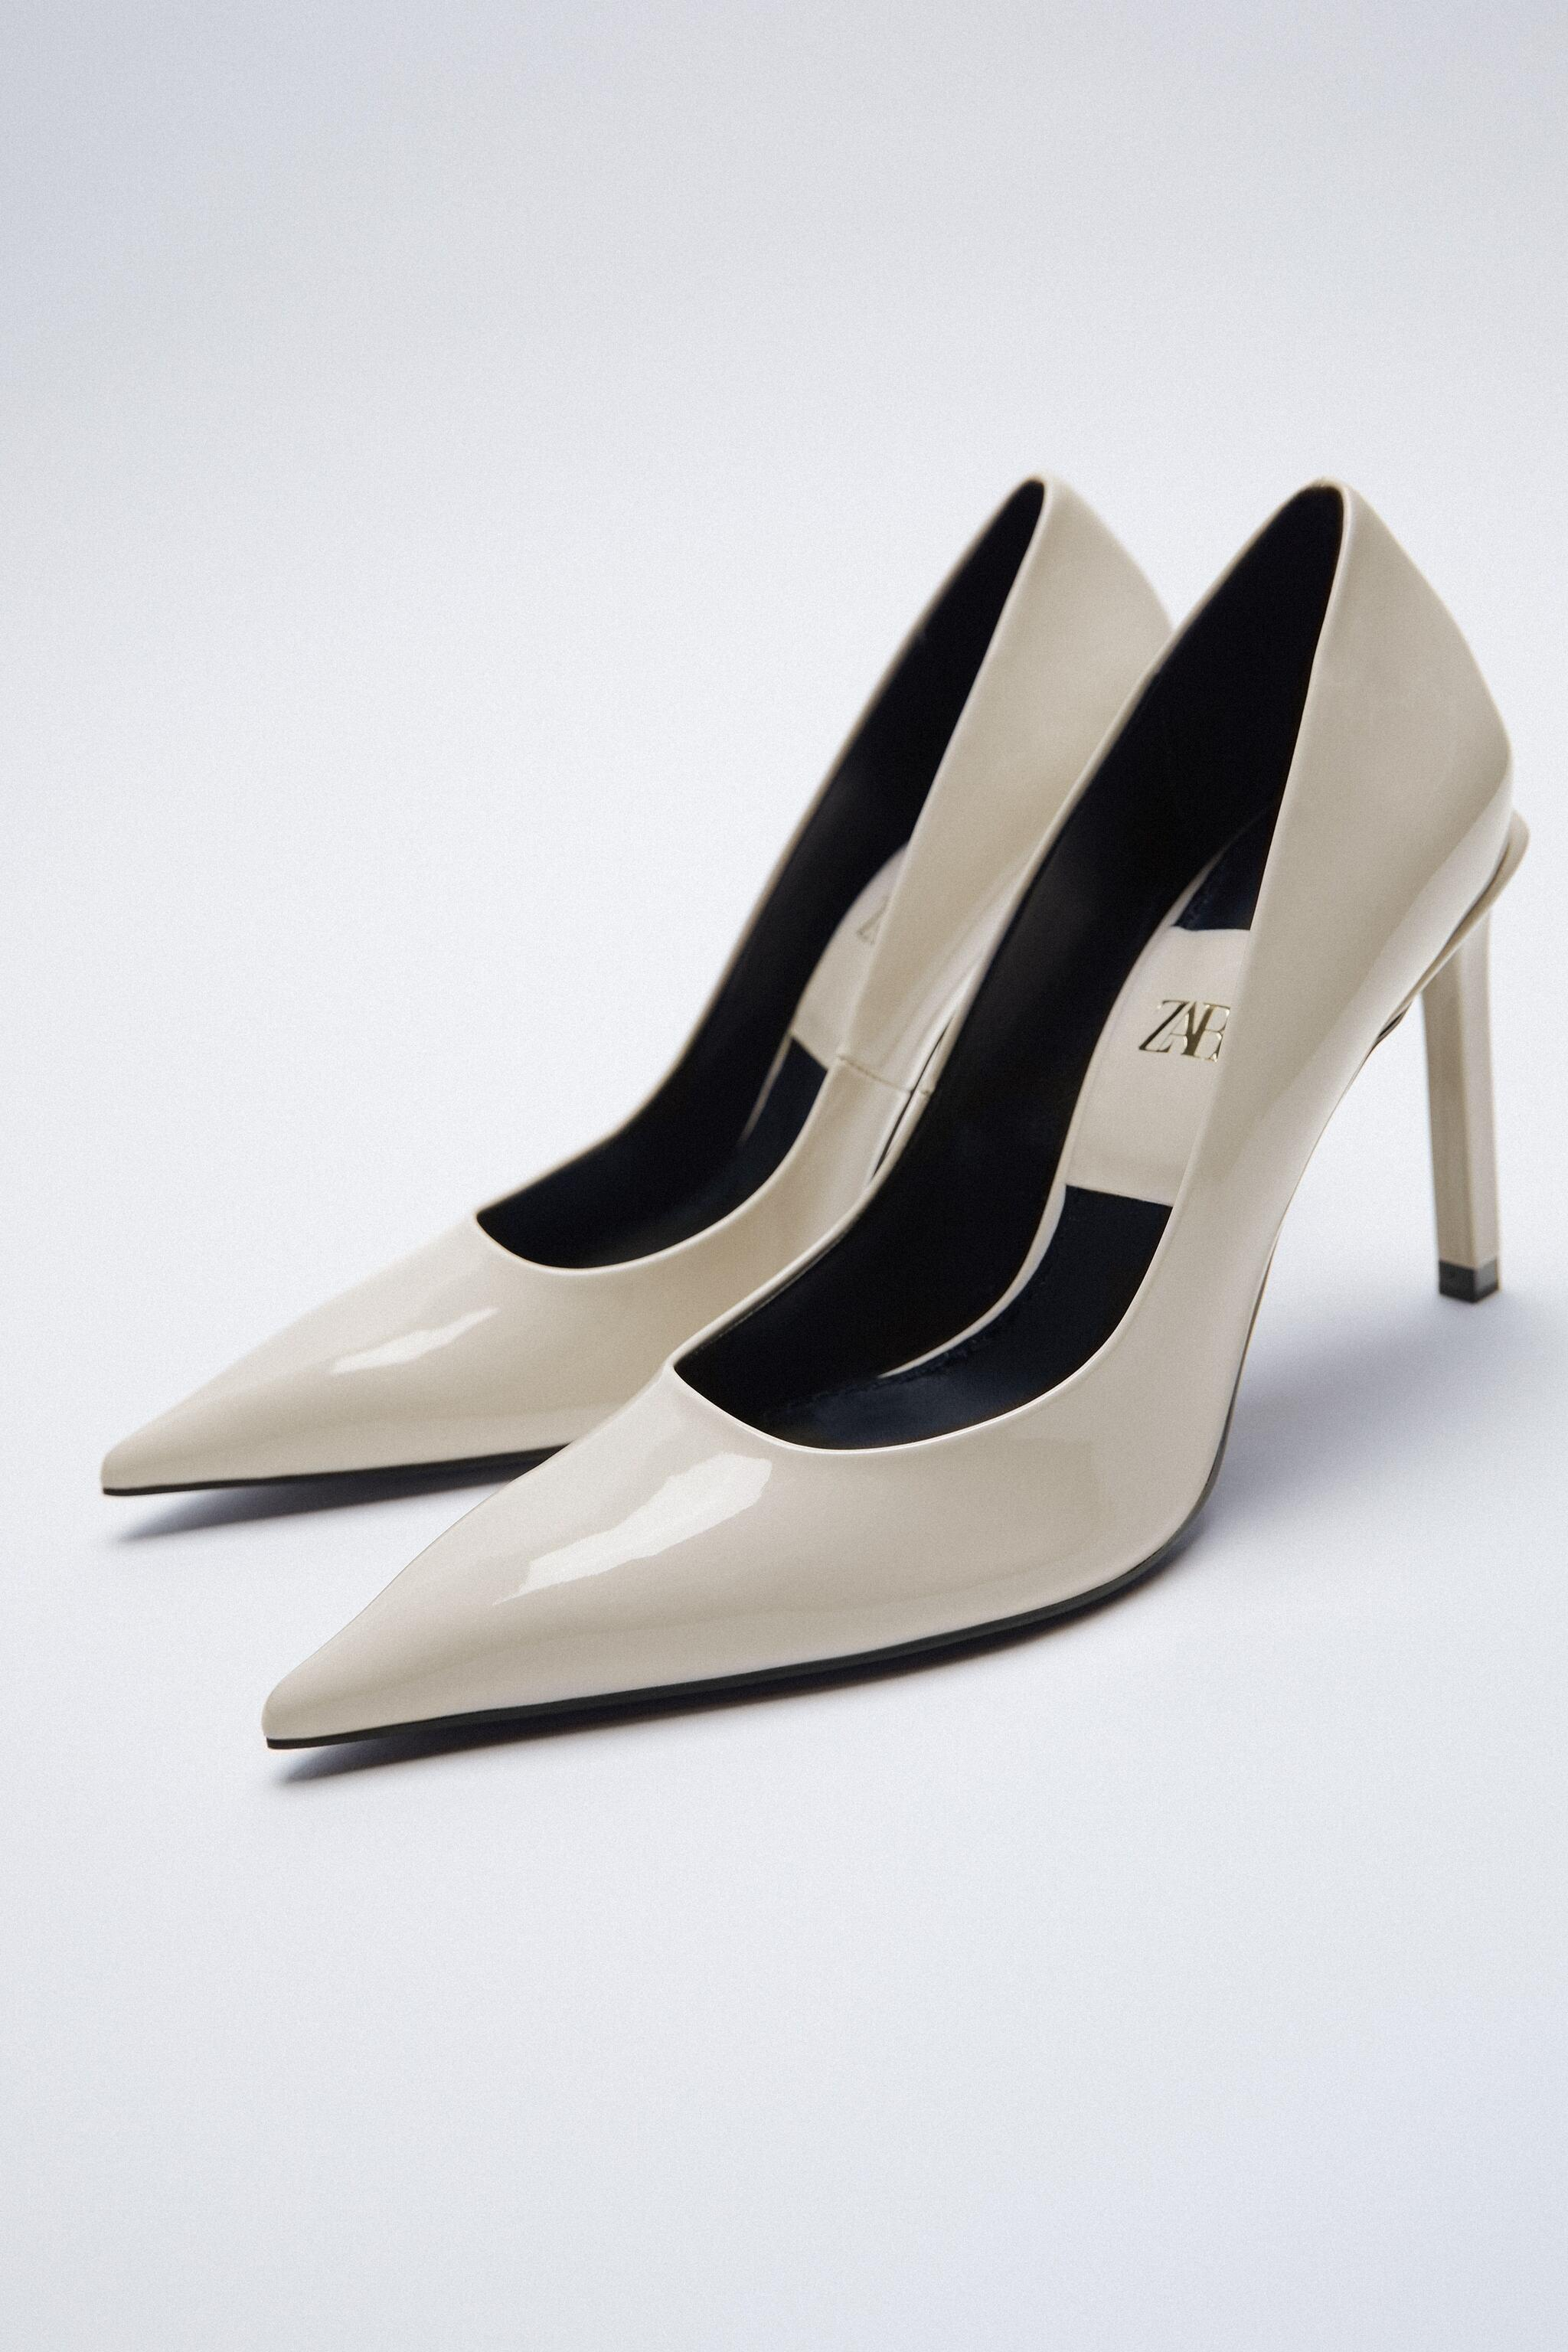 PATENT FINISH POINTED TOE HEELS 3